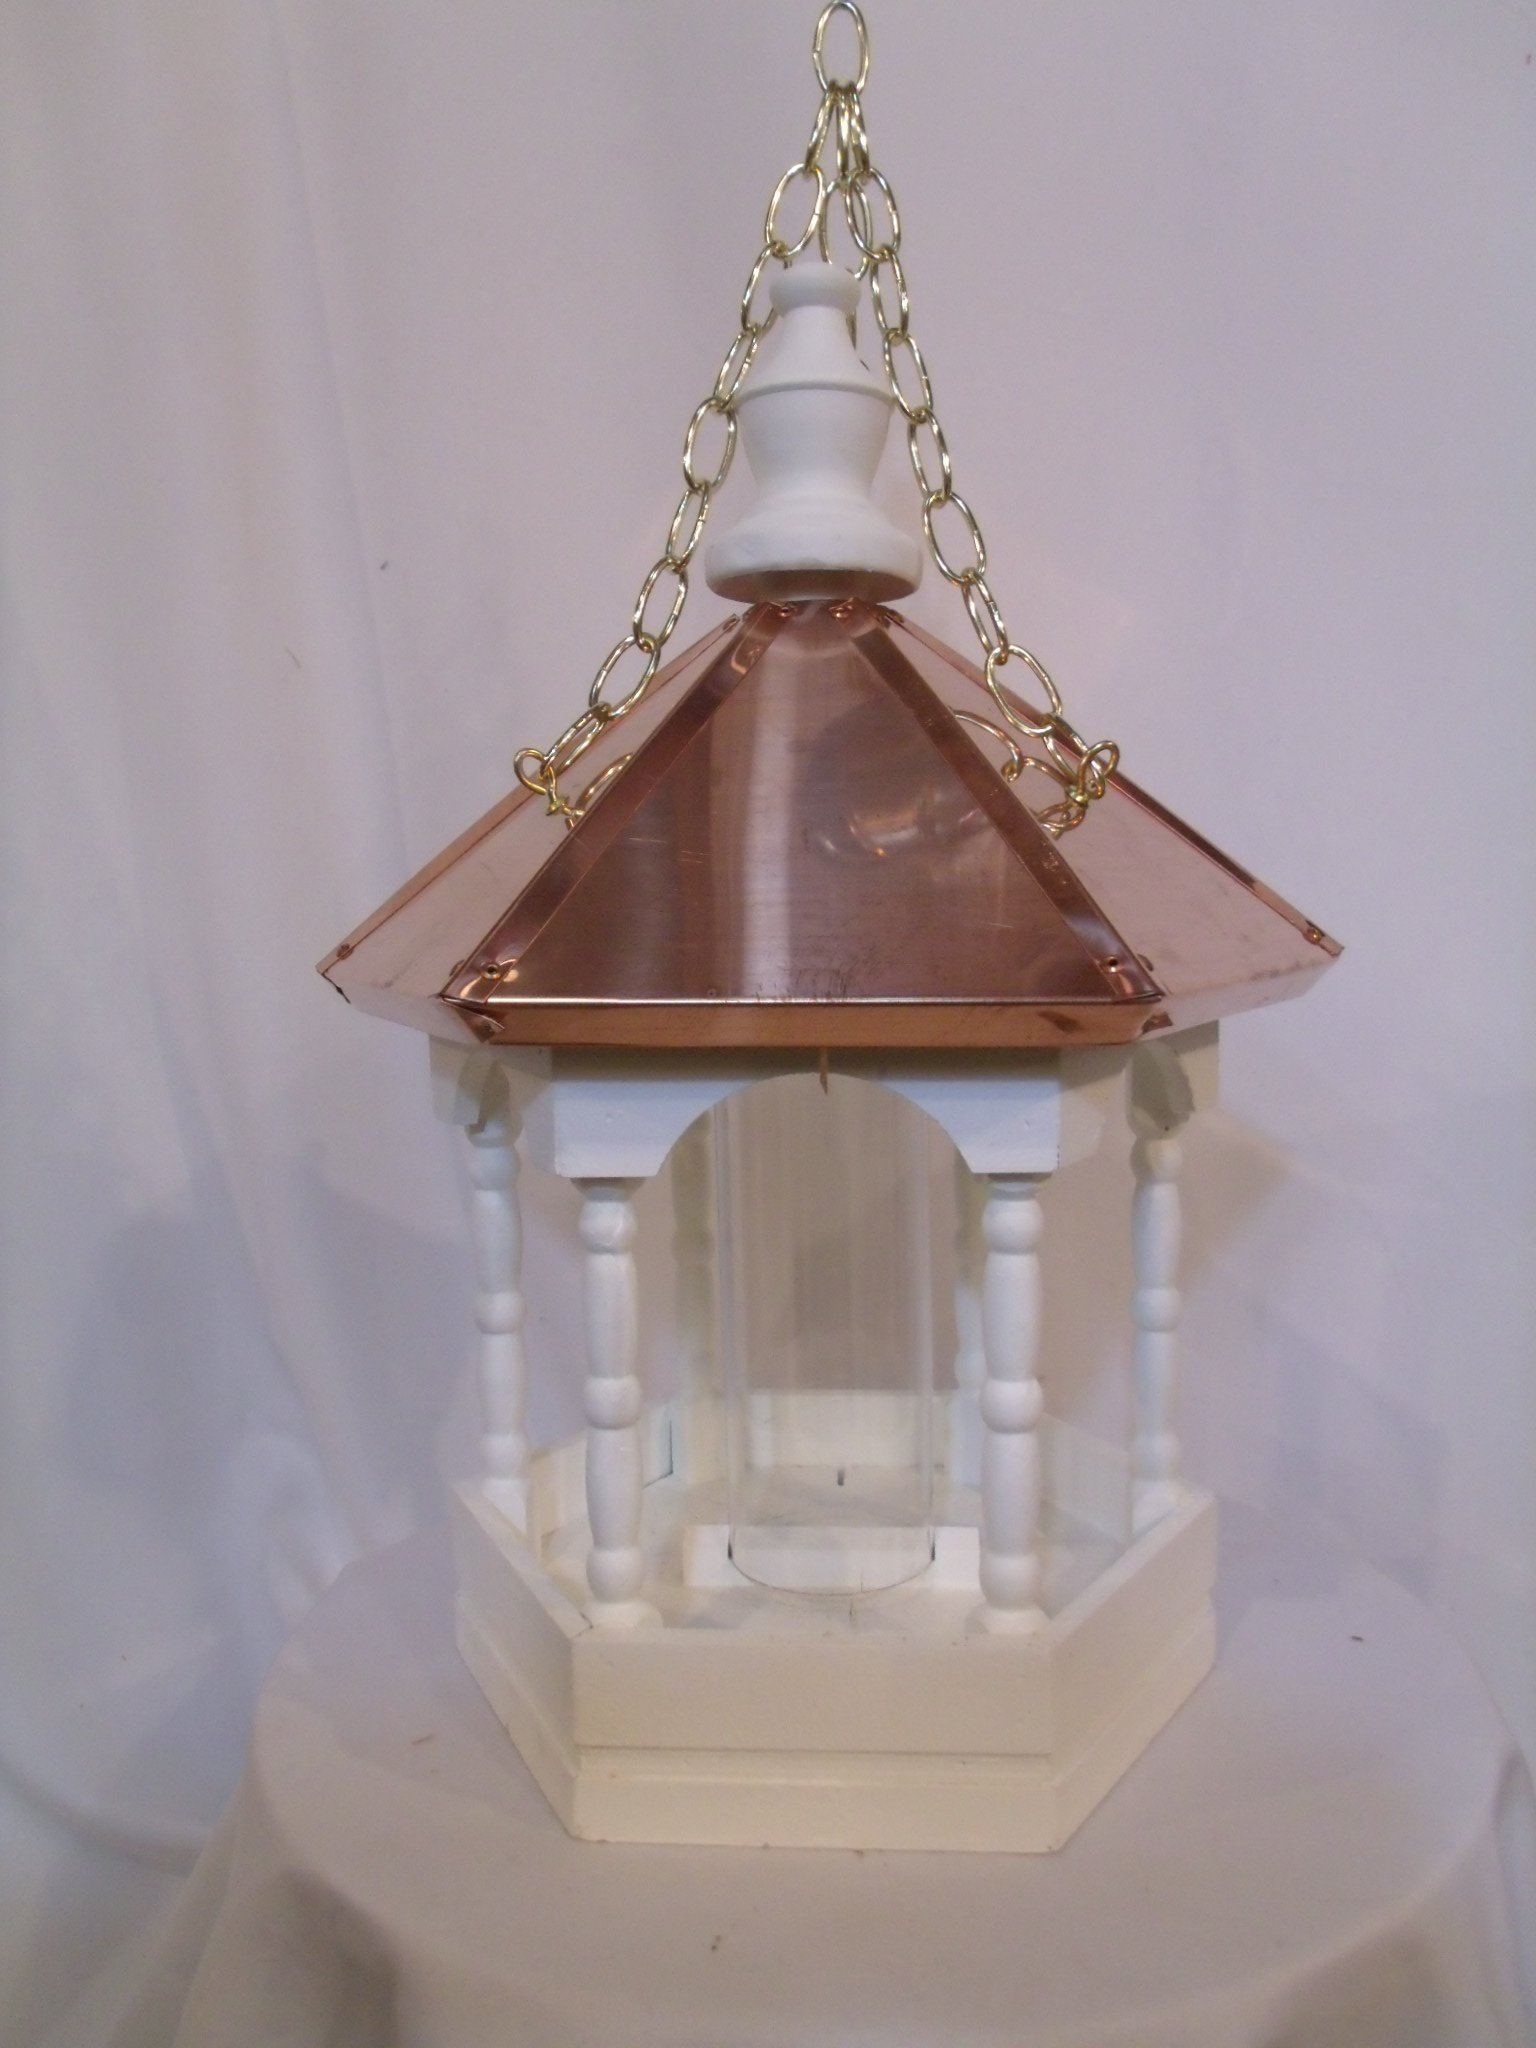 Hanging Copper top Roof Bird Feeder Amish Made in USA Large 22 inches TALL